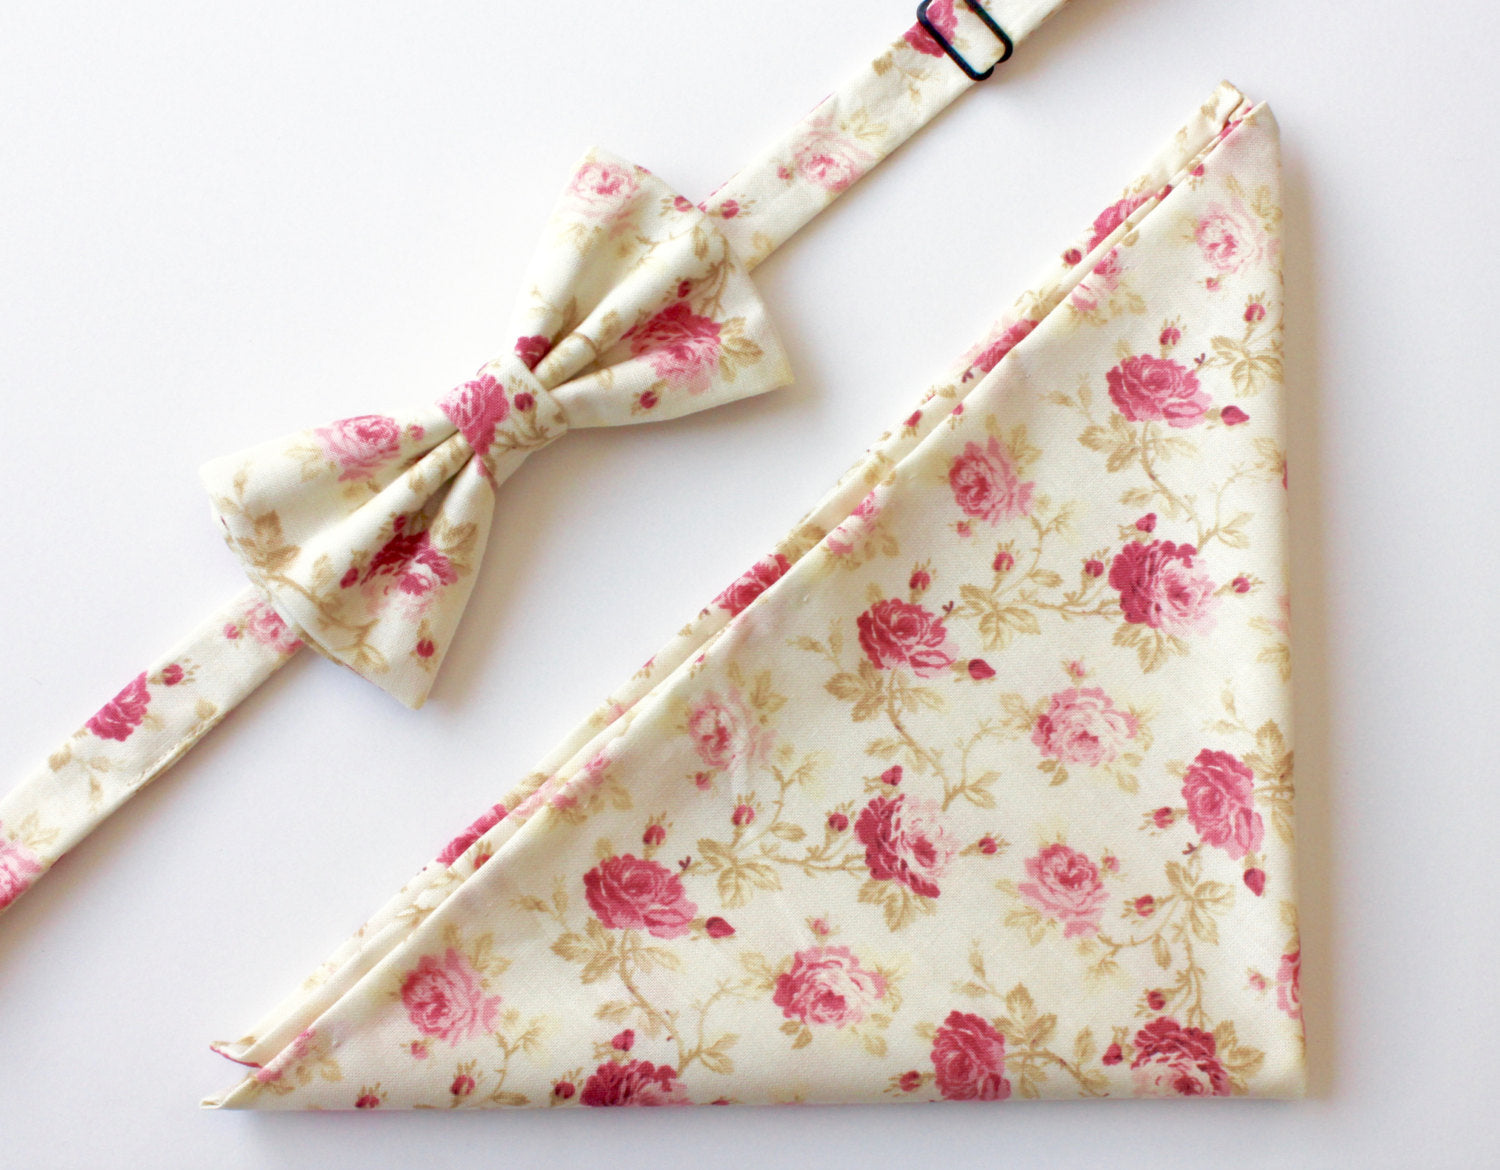 Pink & Cream Floral Bow Tie & Pocket Square Gift Set